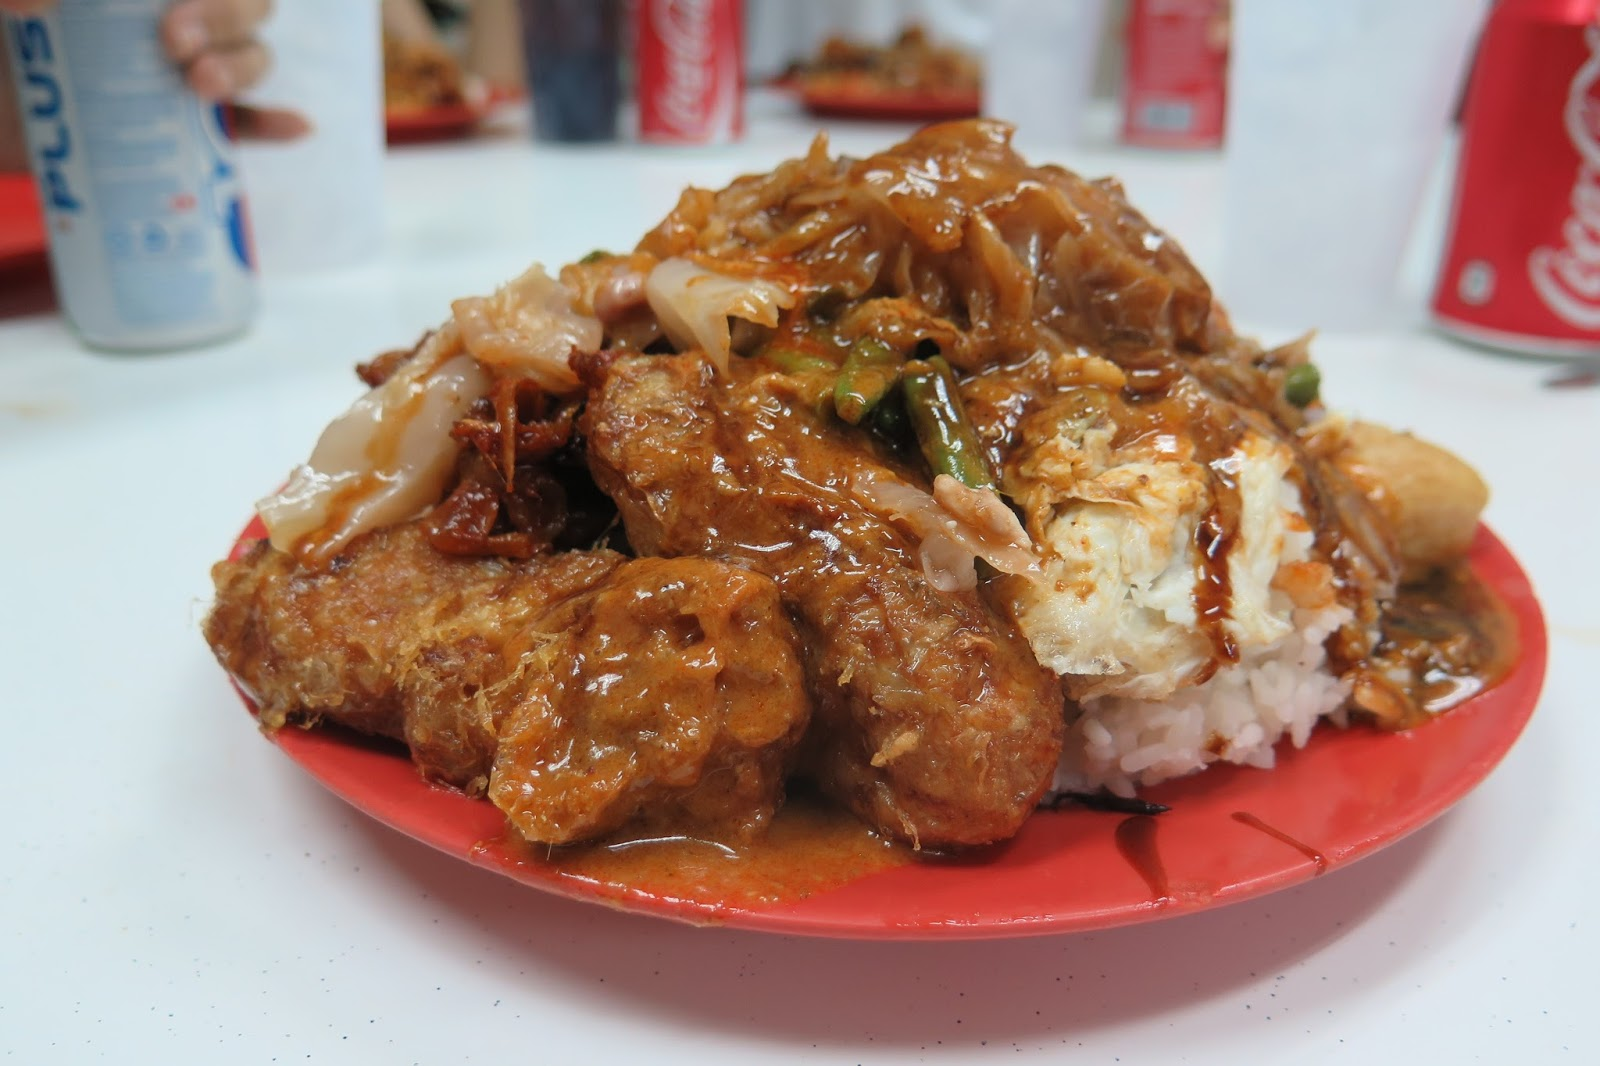 hainanese curry rice scissor cut singapore street hawker food